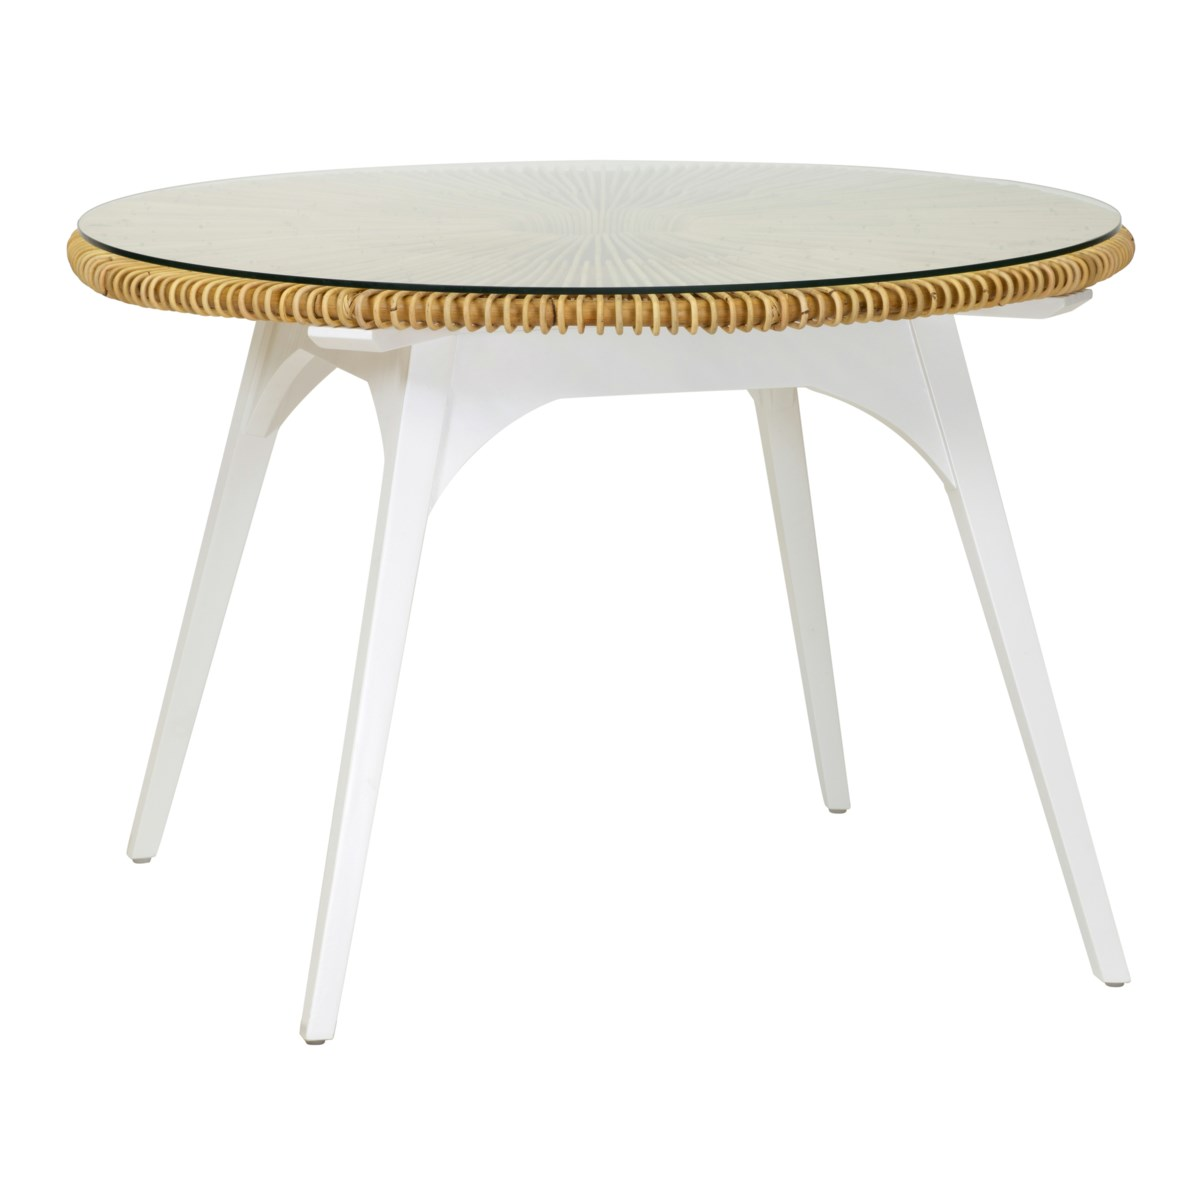 Clemente Dining Table in Natural/White